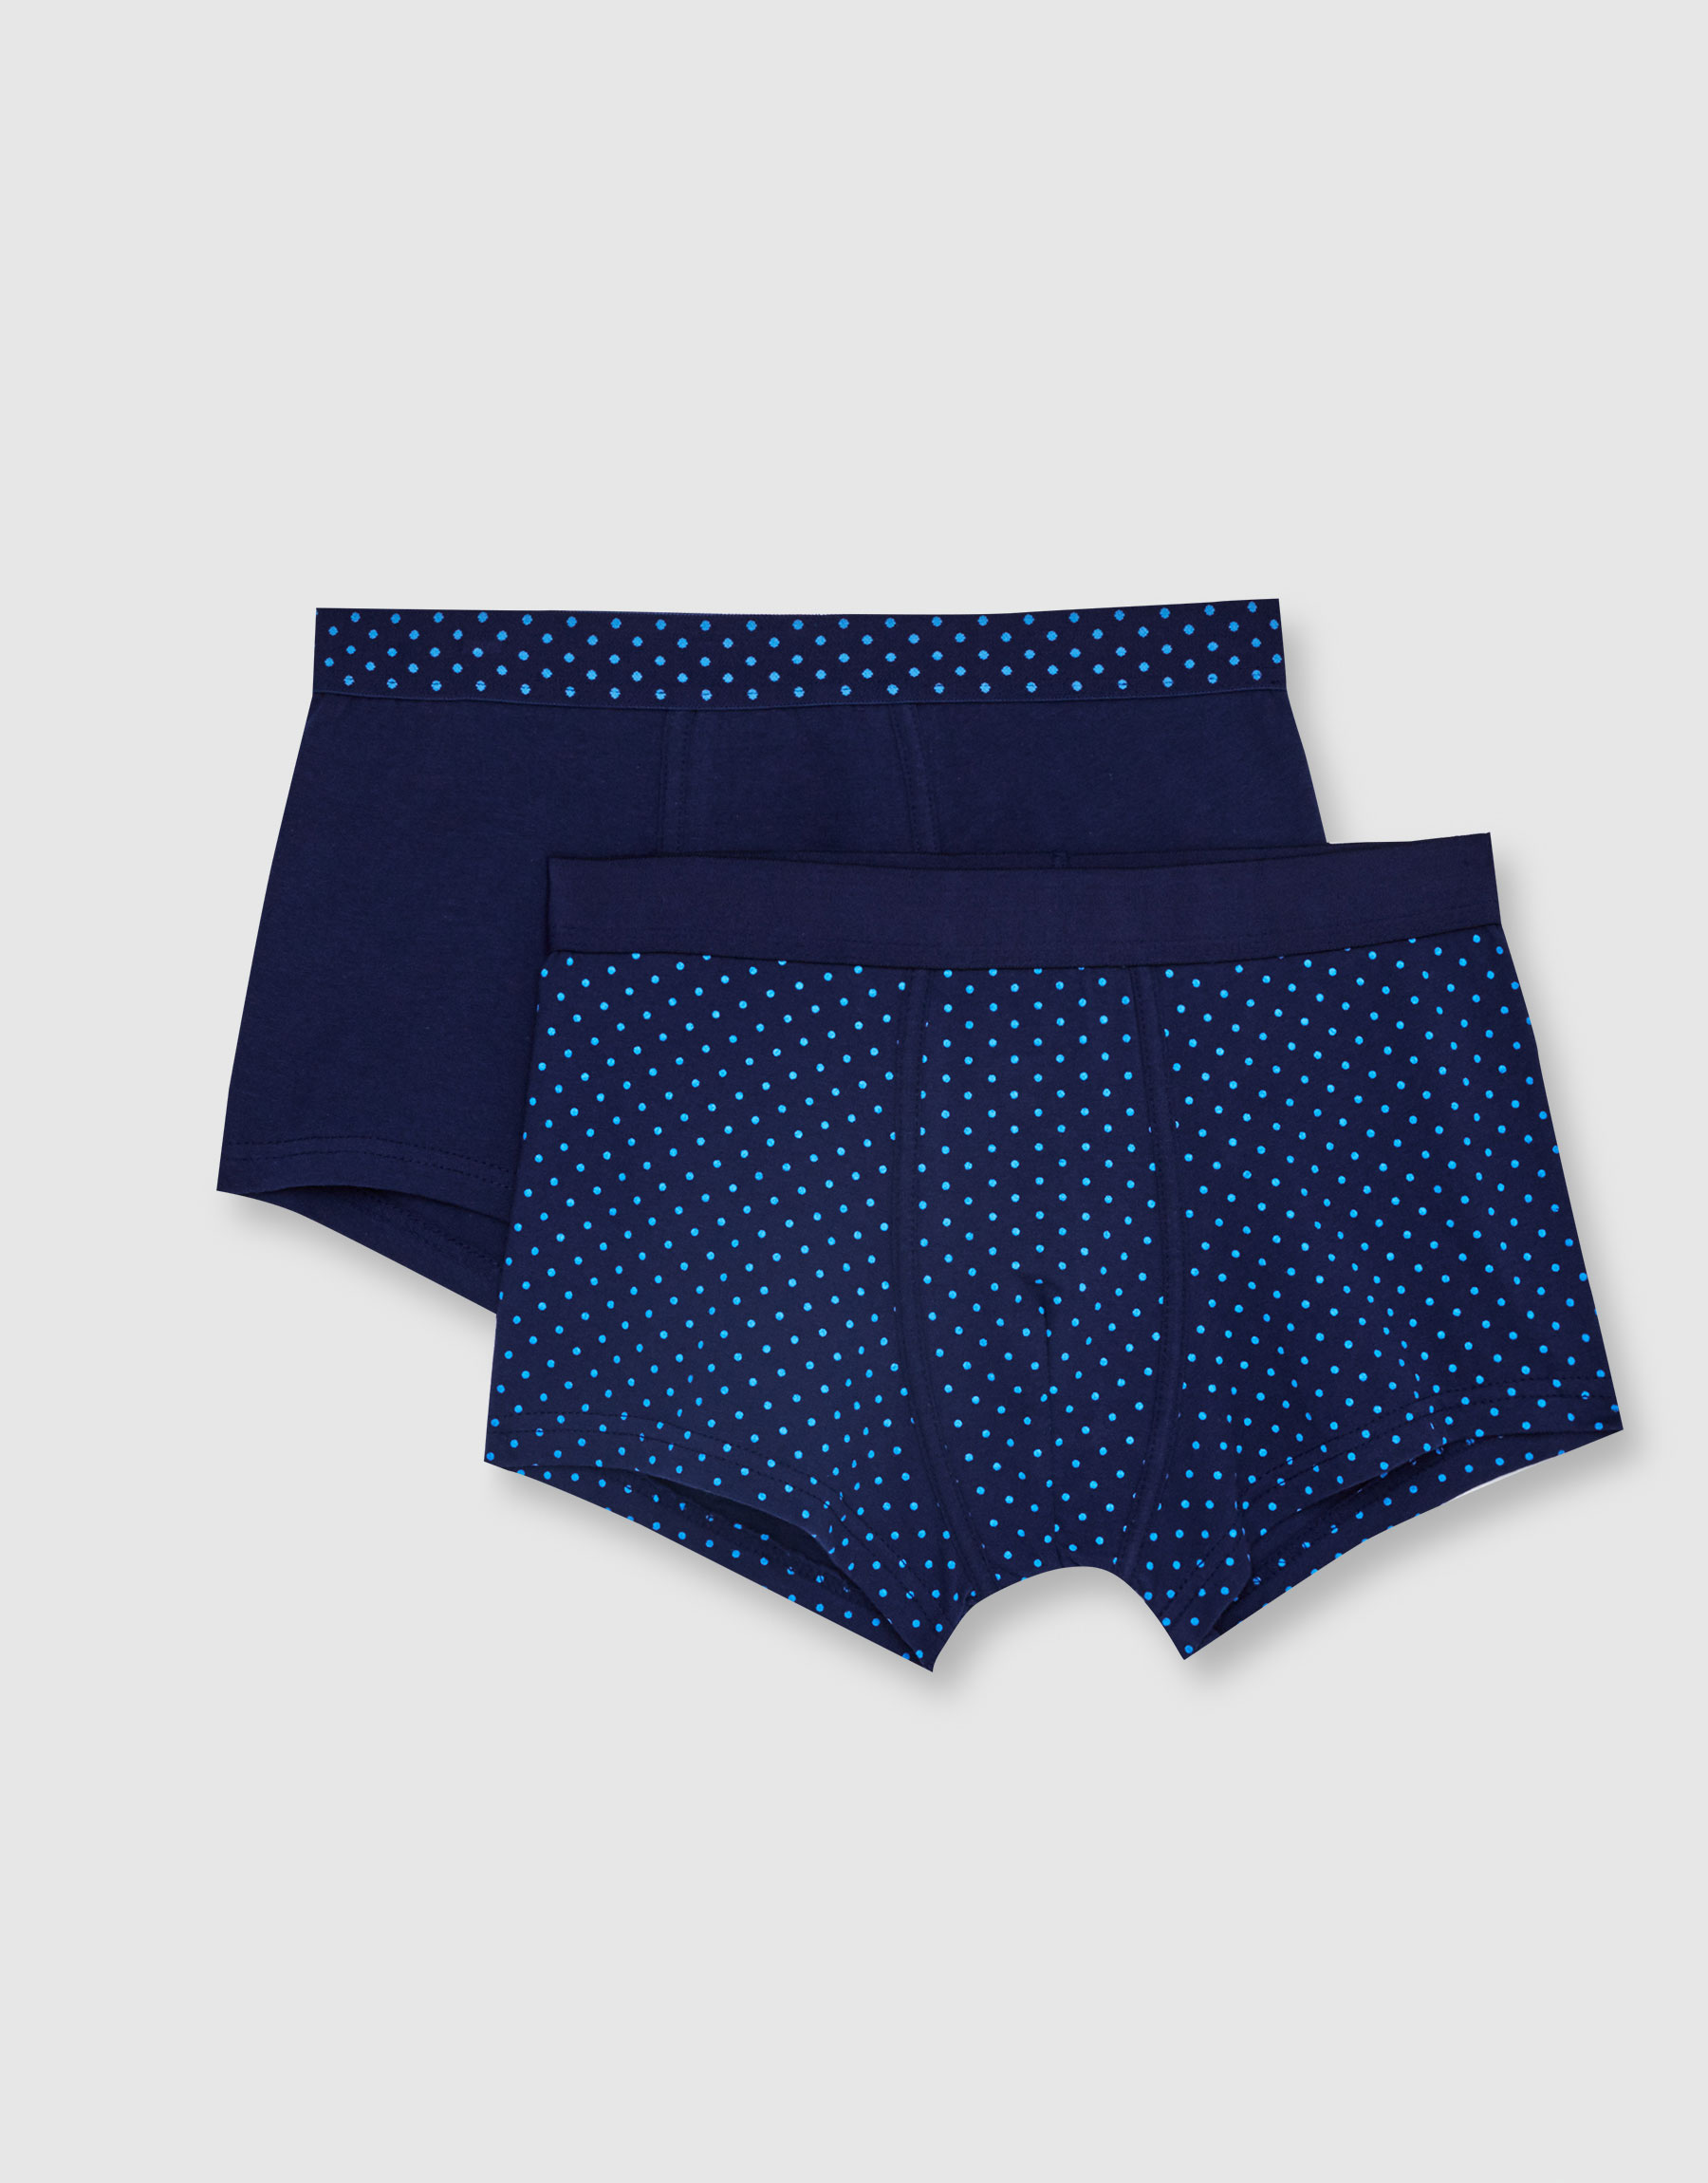 Boxer shorts with polka dot waistband (Pack of 2)